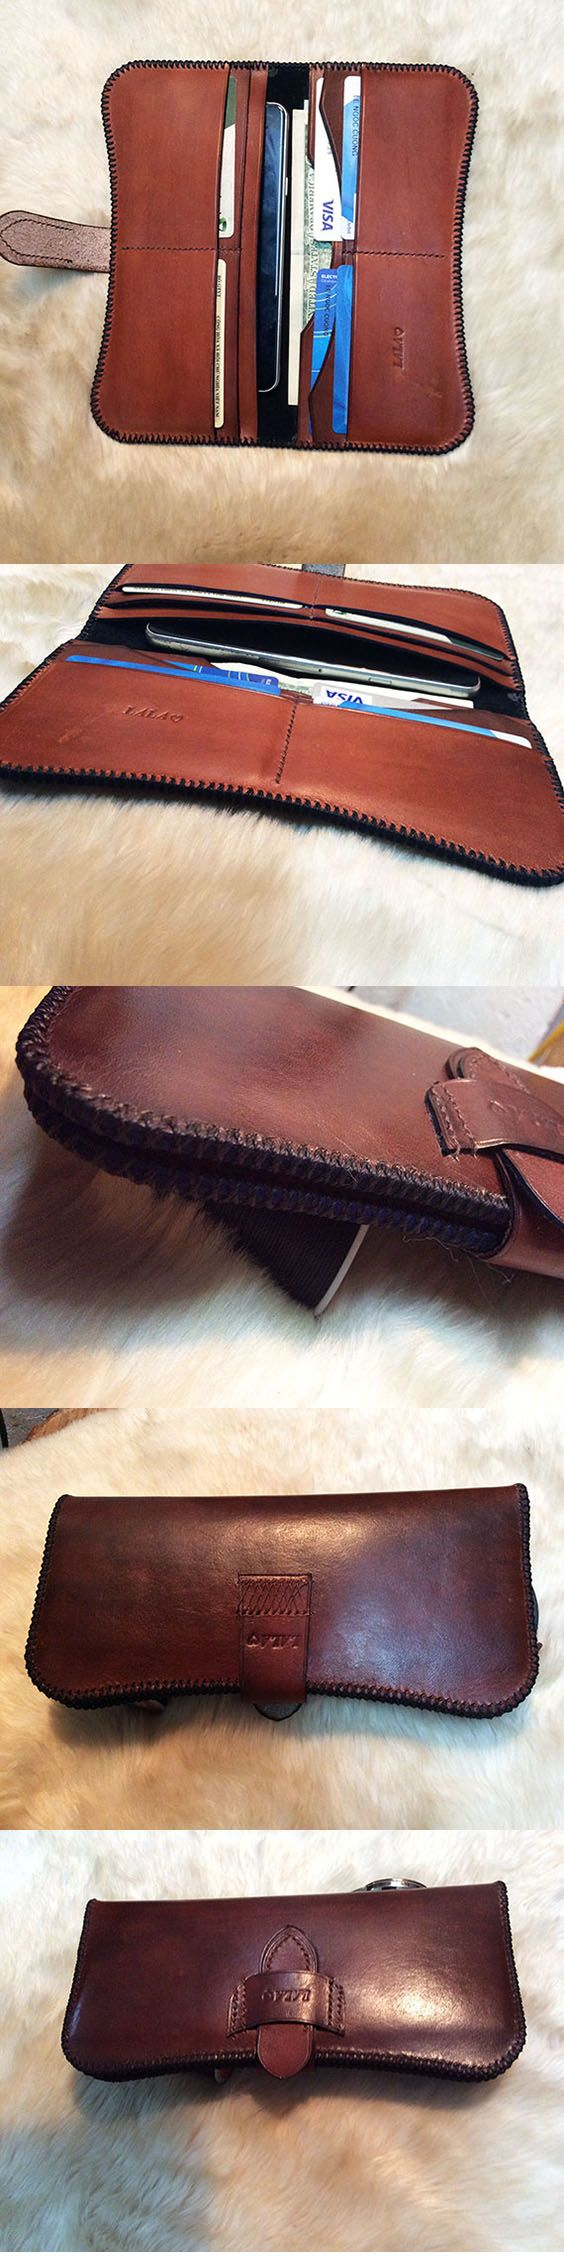 https://www.etsy.com/listing/574875037/leather-wallet-for-women-wallet-women?ref=shop_home_active_25